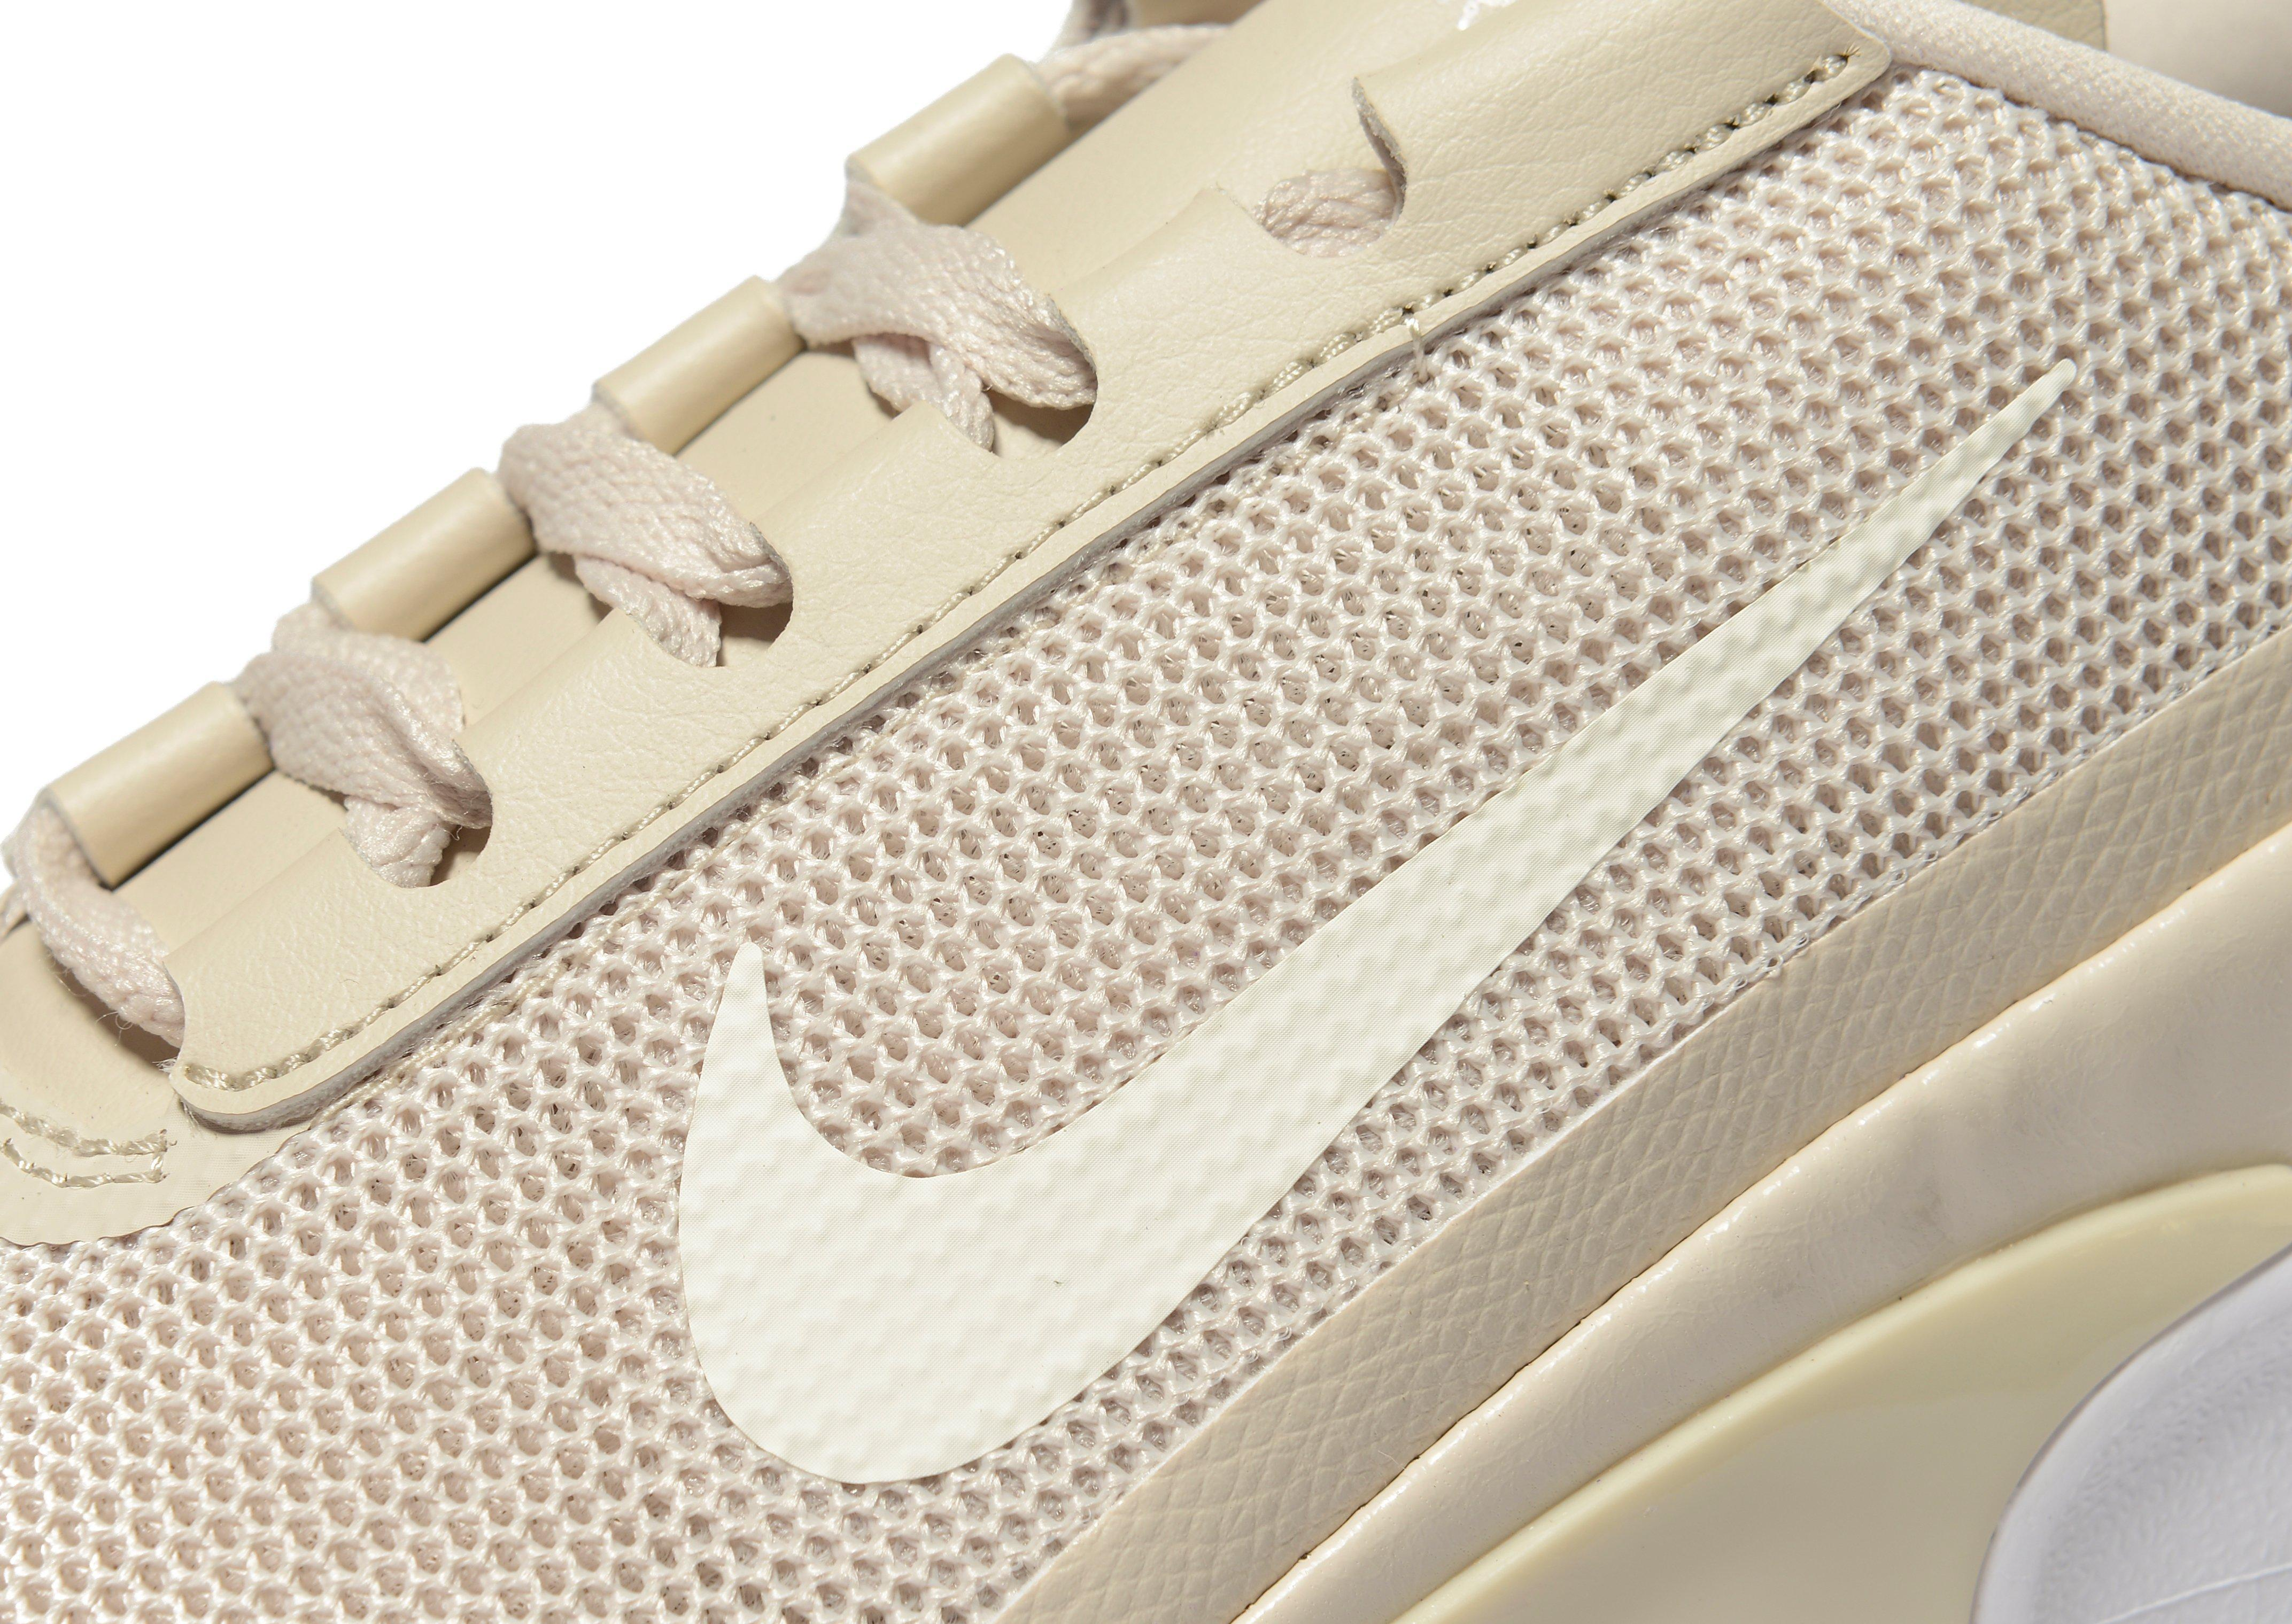 Lyst - Nike Air Max Jewell in White 8640f66a4